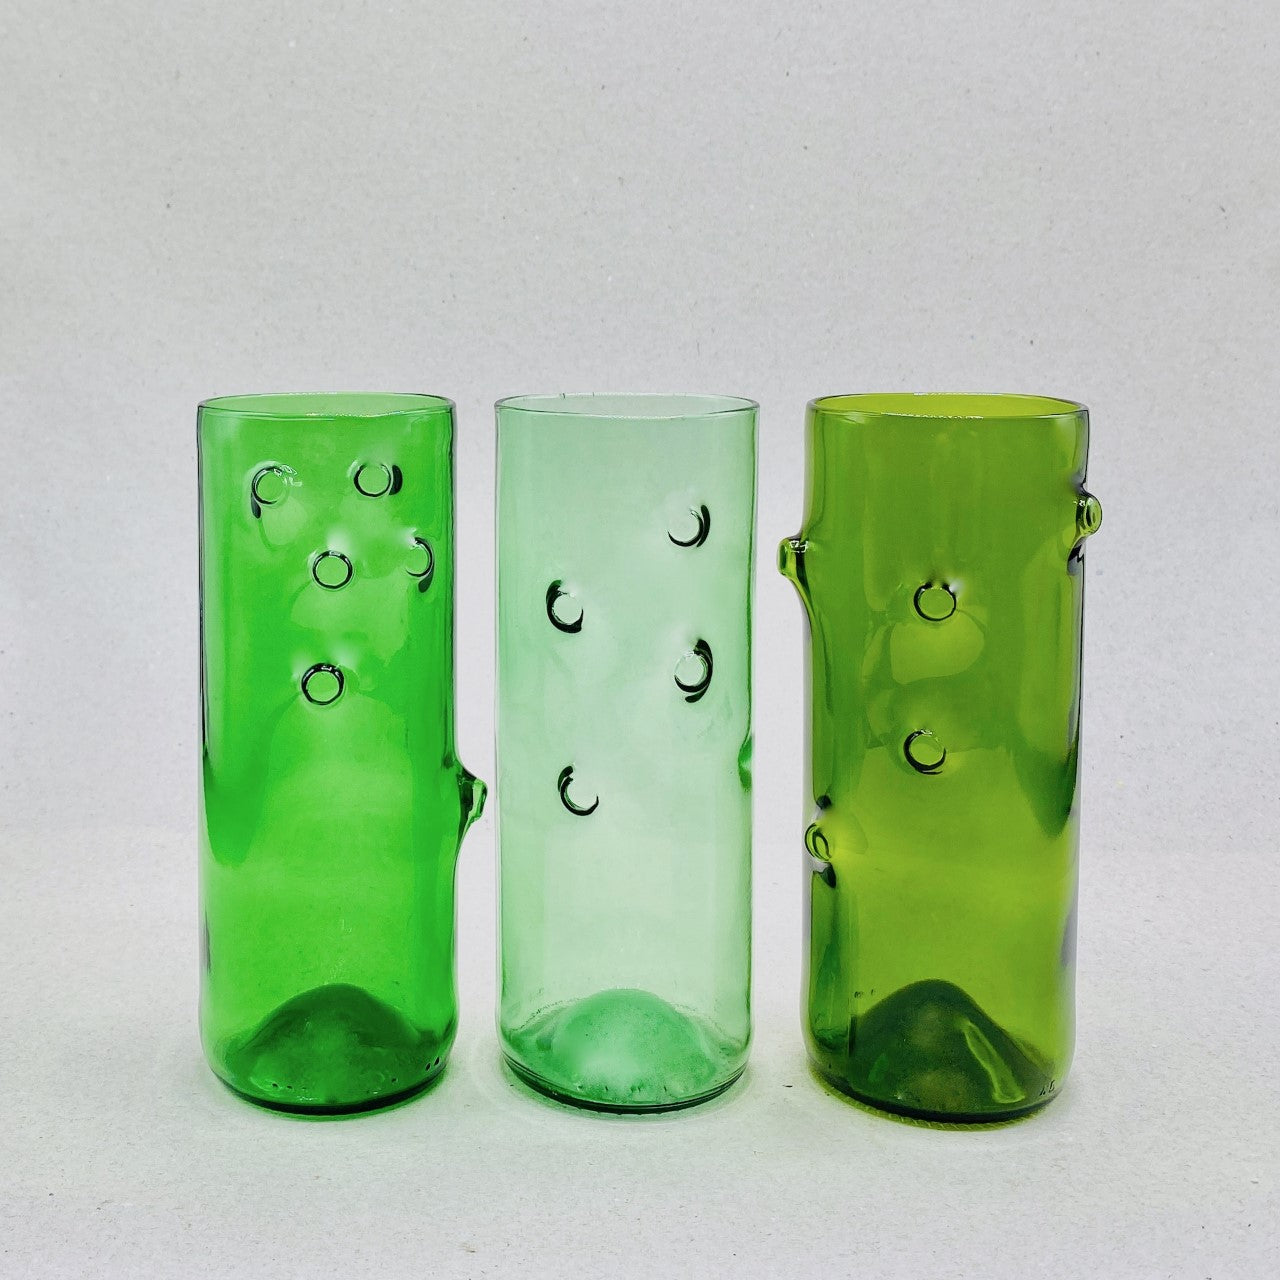 Earth-friendly Glass Vases - N á t t ú r a l